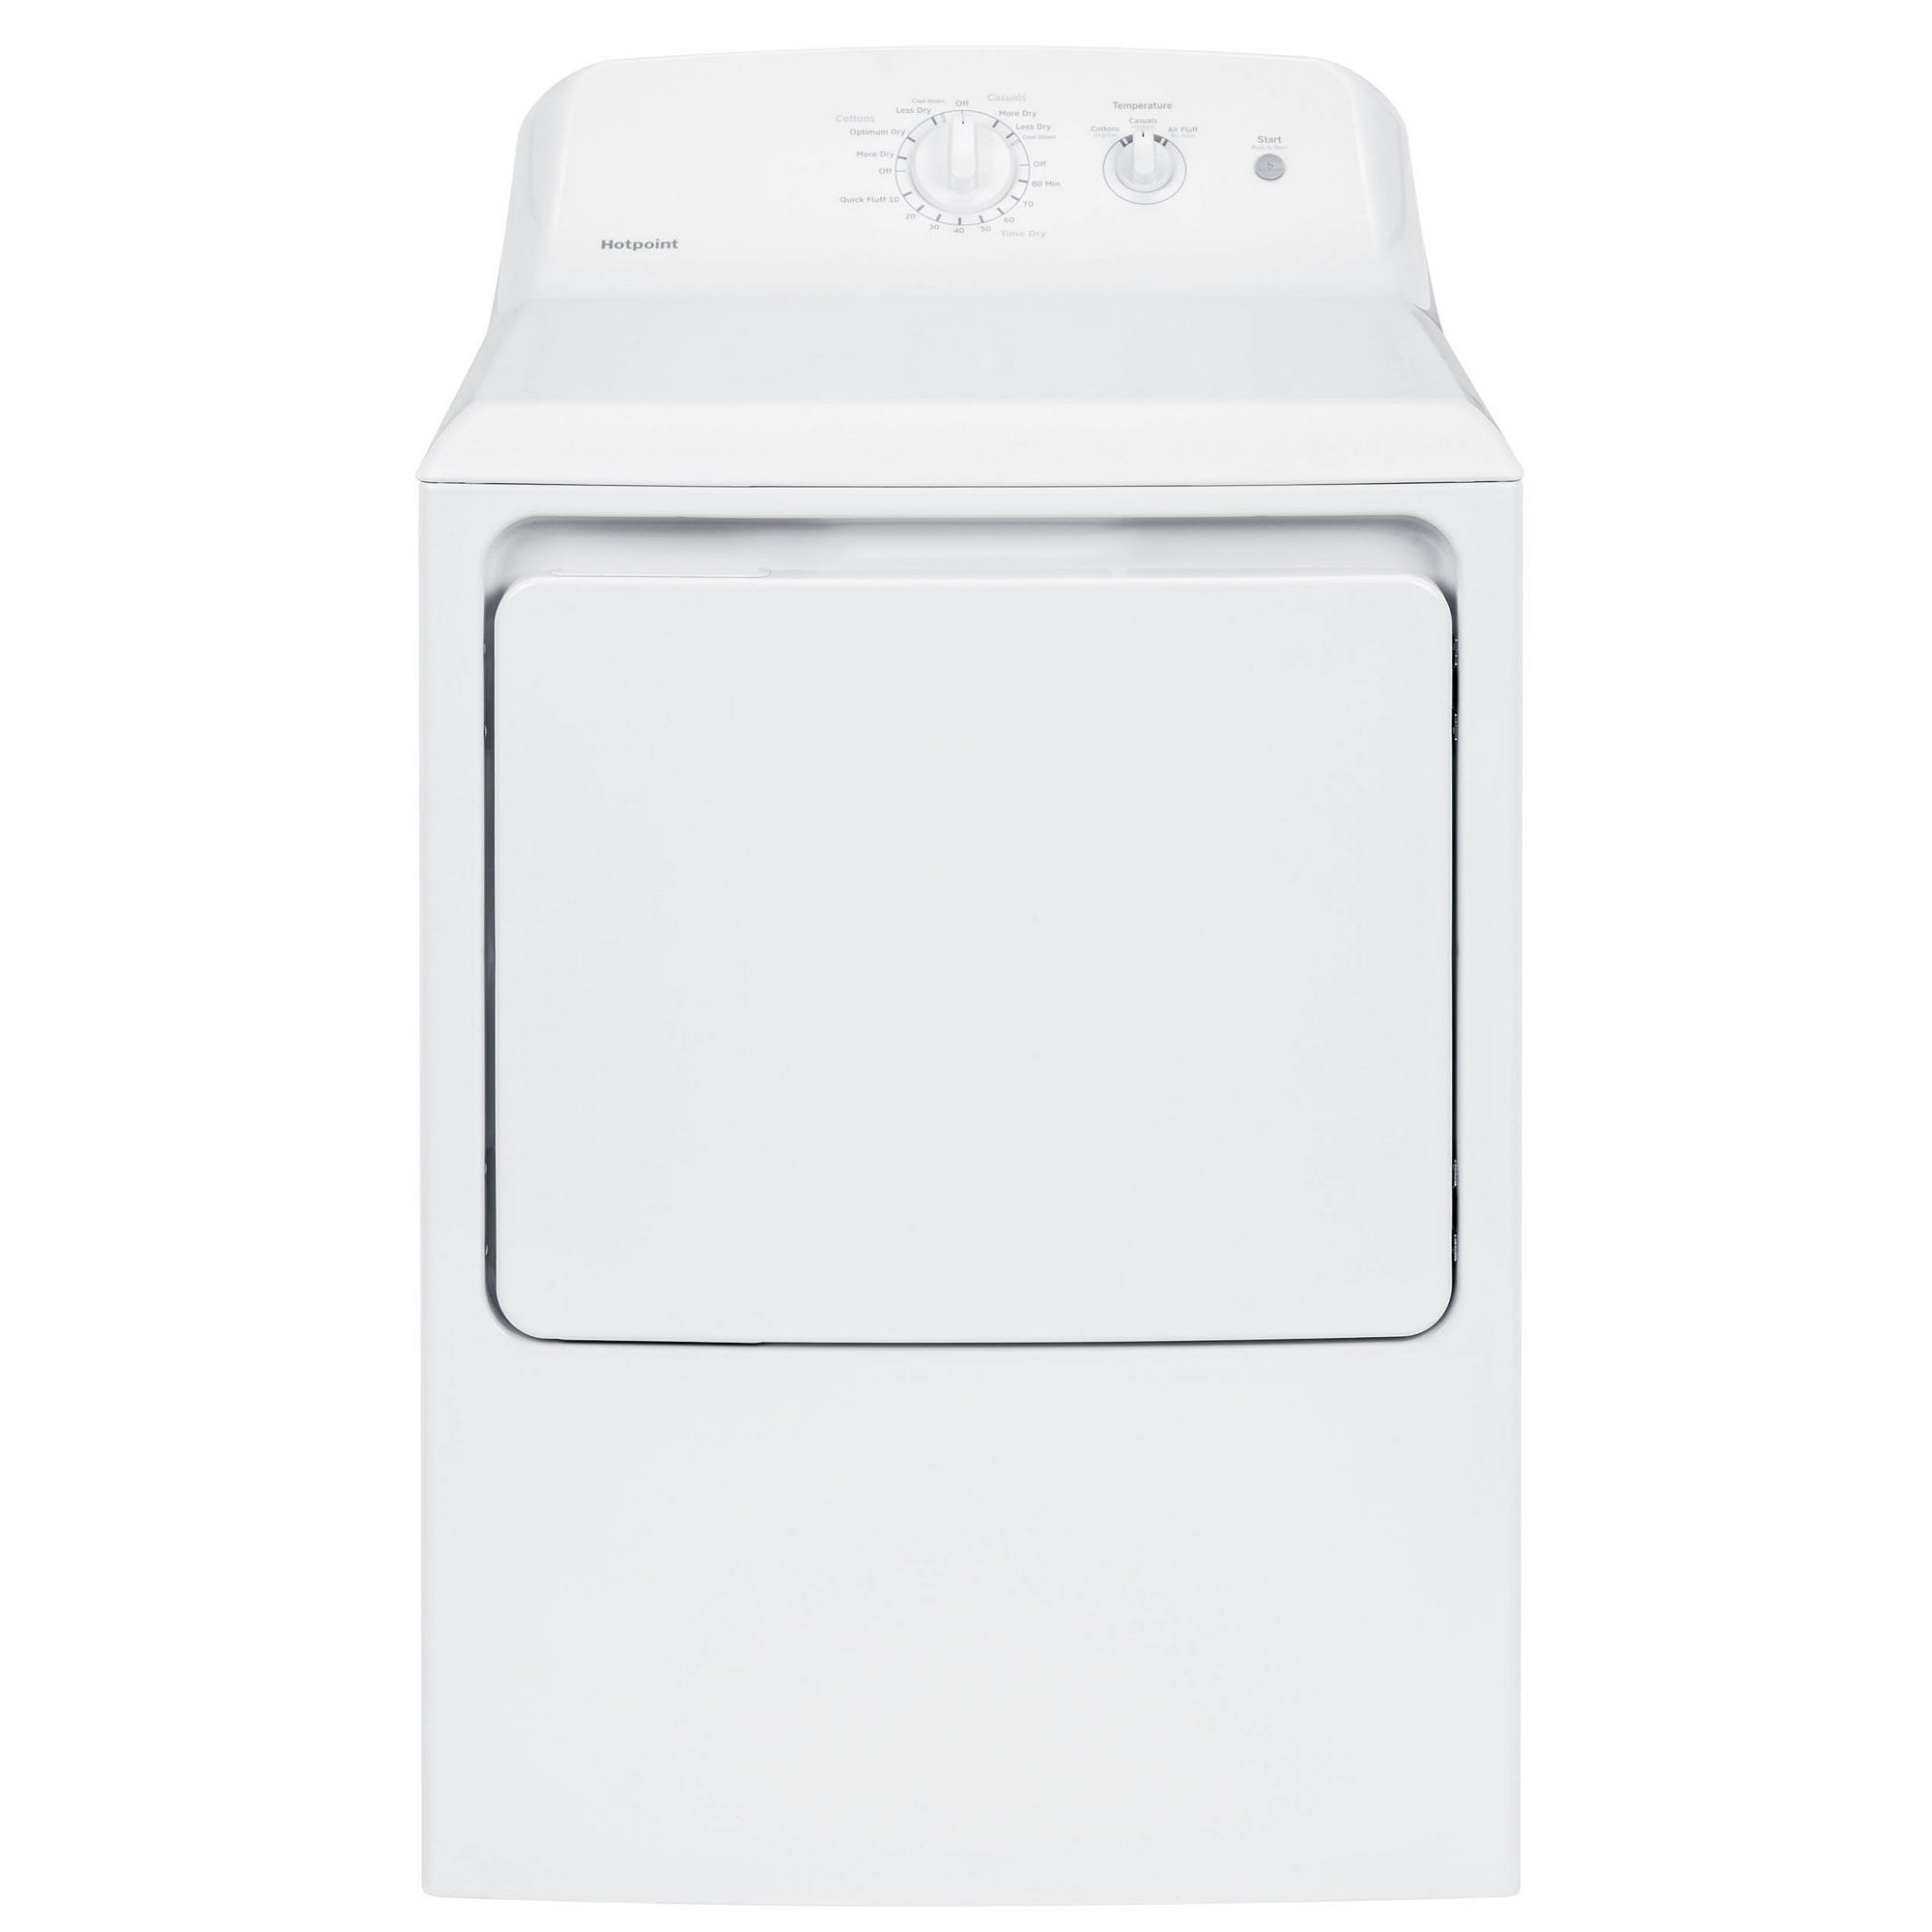 Hotpoint 6.2 cu. ft. Capacity Aluminized Alloy Gas Dryer - HTX21GASKWW